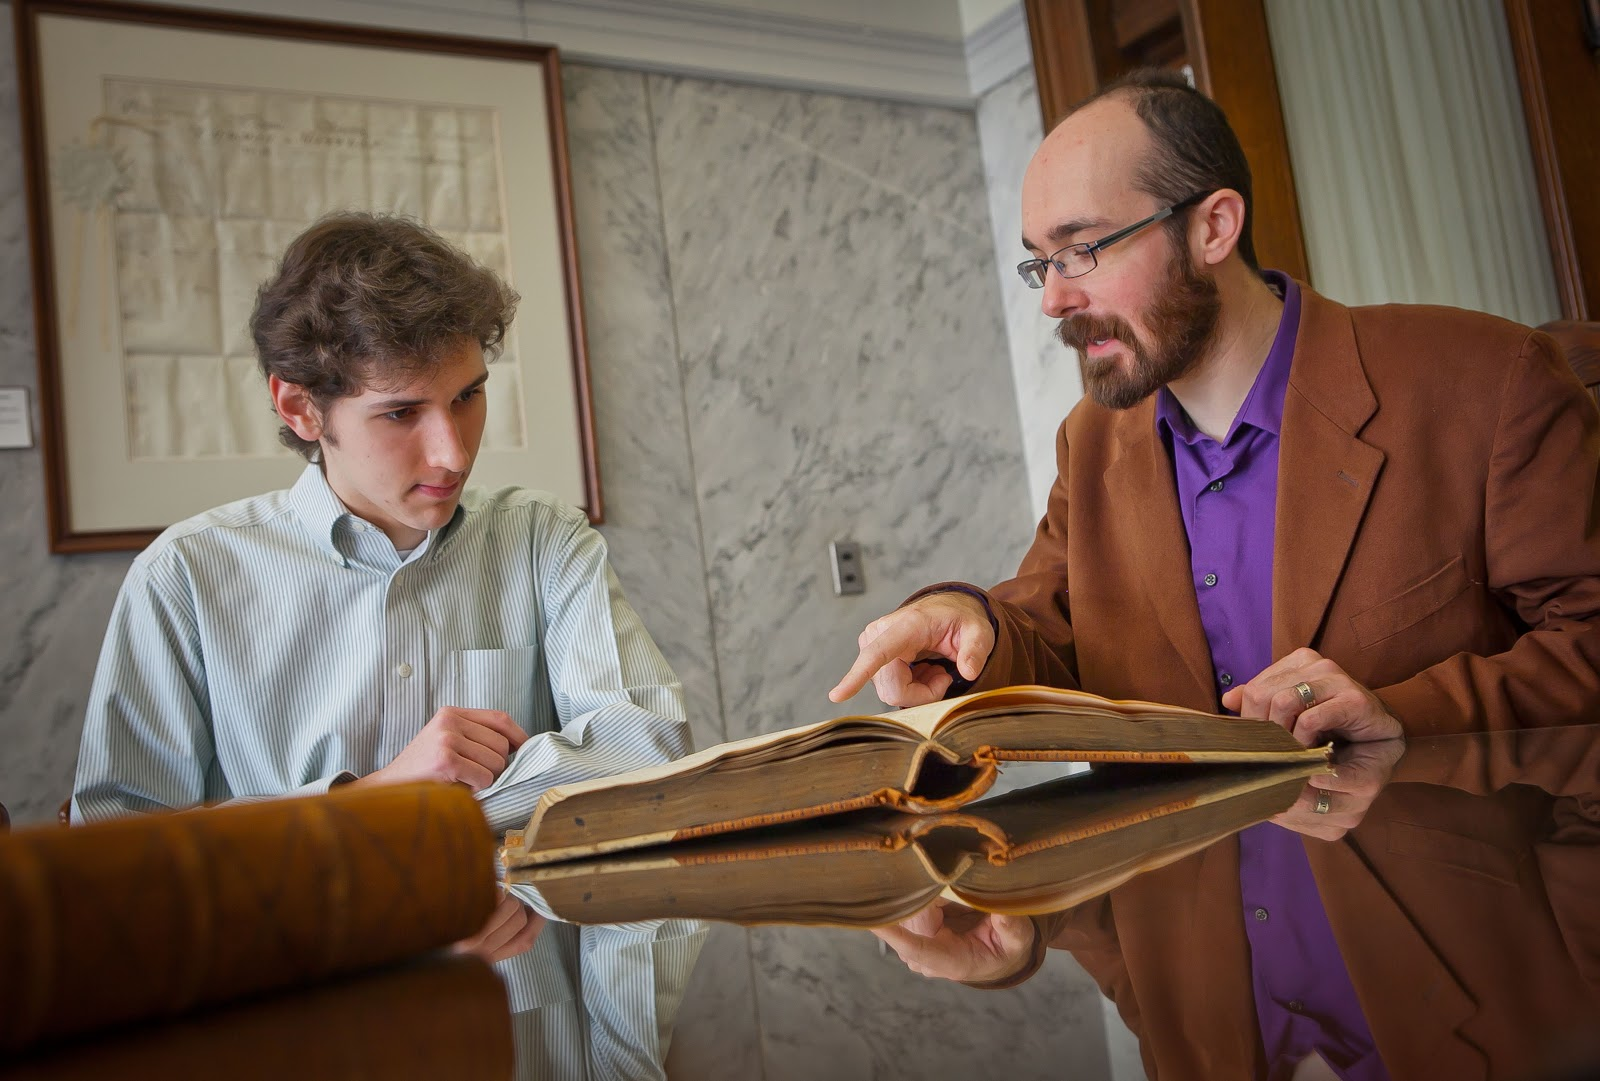 image of professor phillips opening a book and pointing to something with a student